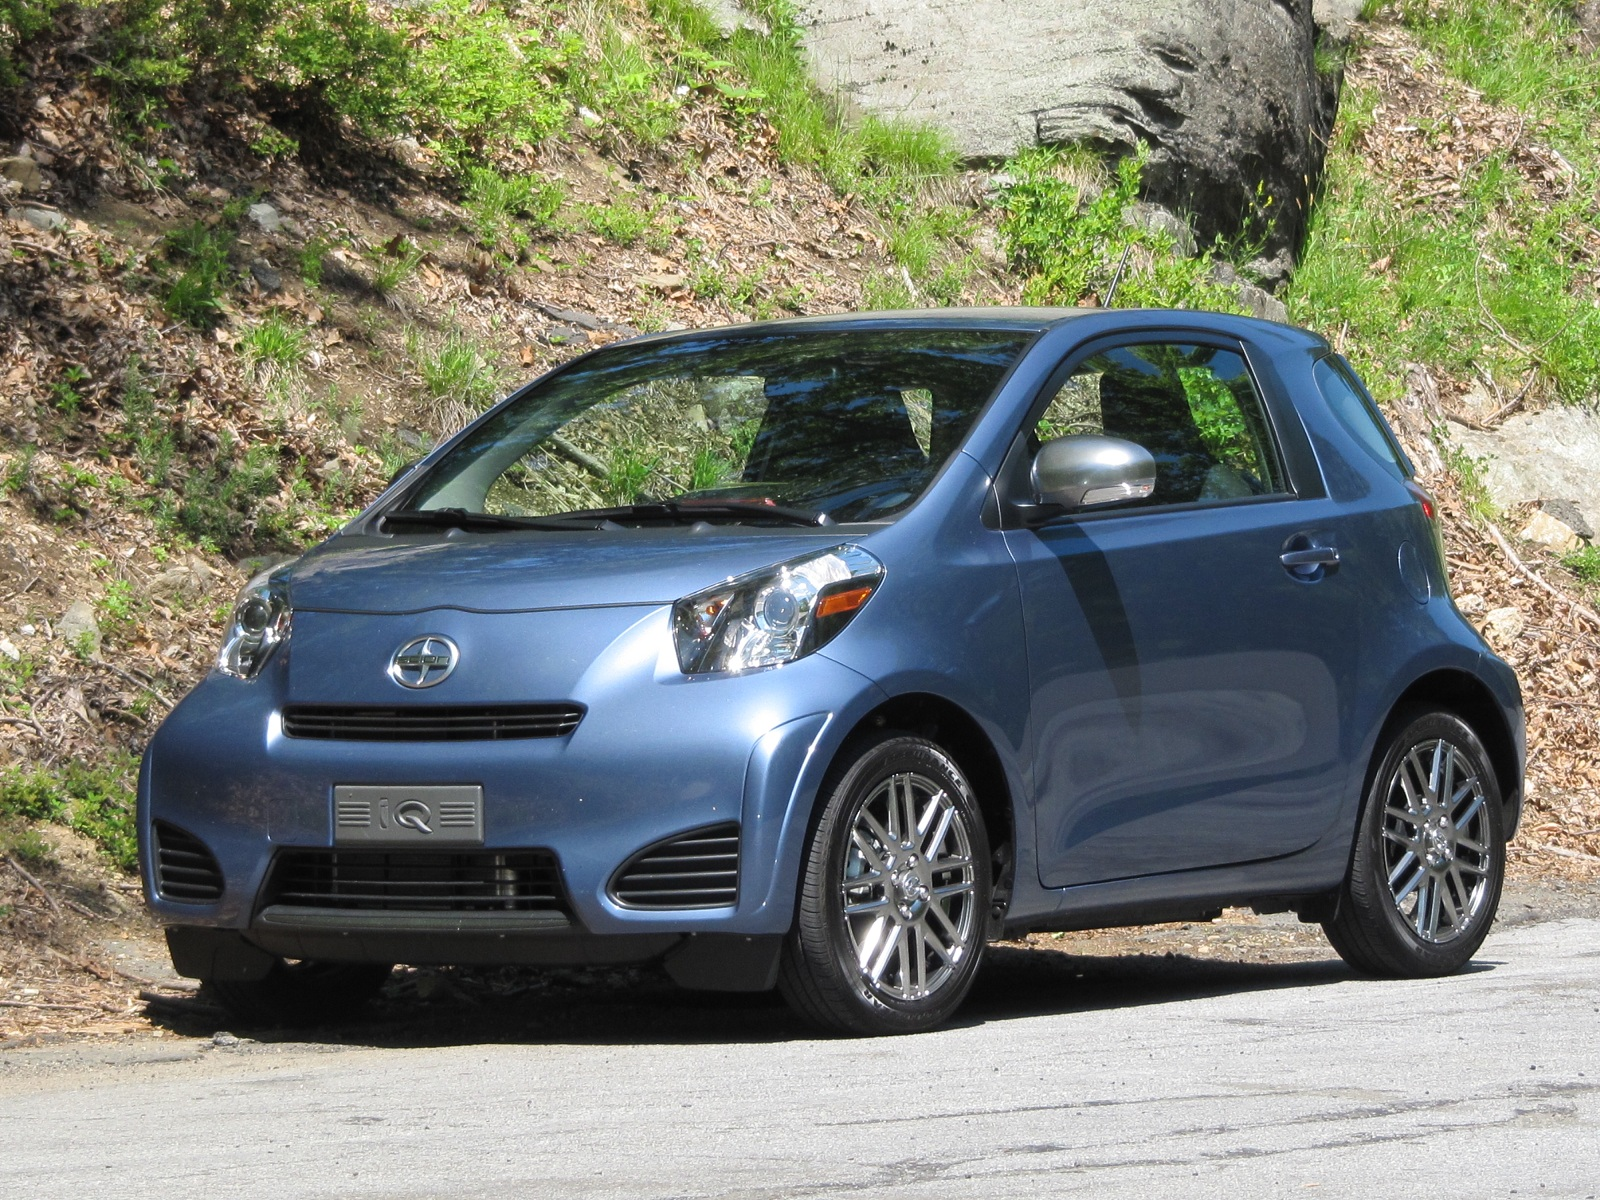 2012 scion iq 2012 honda cr z same gas mileage but very different. Black Bedroom Furniture Sets. Home Design Ideas